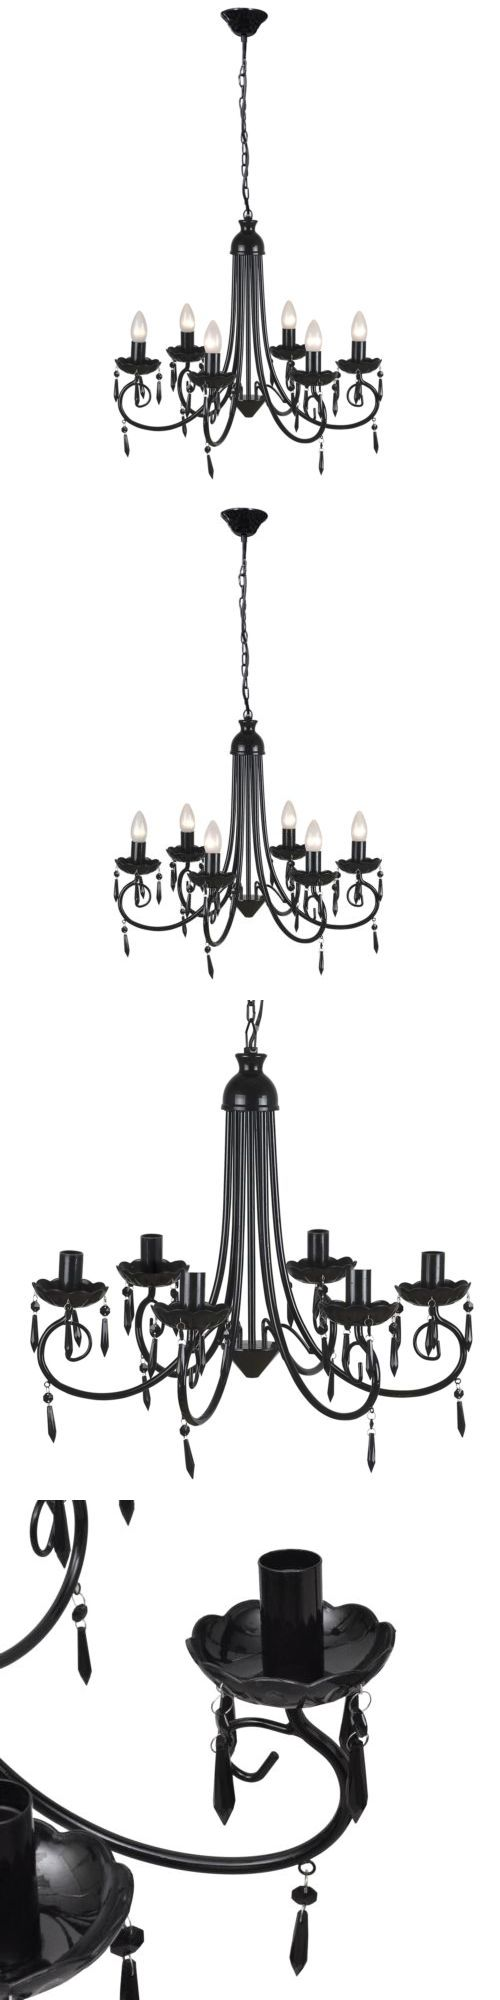 Lamps And Lighting: Modern Crystal Chandelier Ceiling Light 6 Lamp Pendant Lighting Fixture Black -> BUY IT NOW ONLY: $47.99 on eBay!